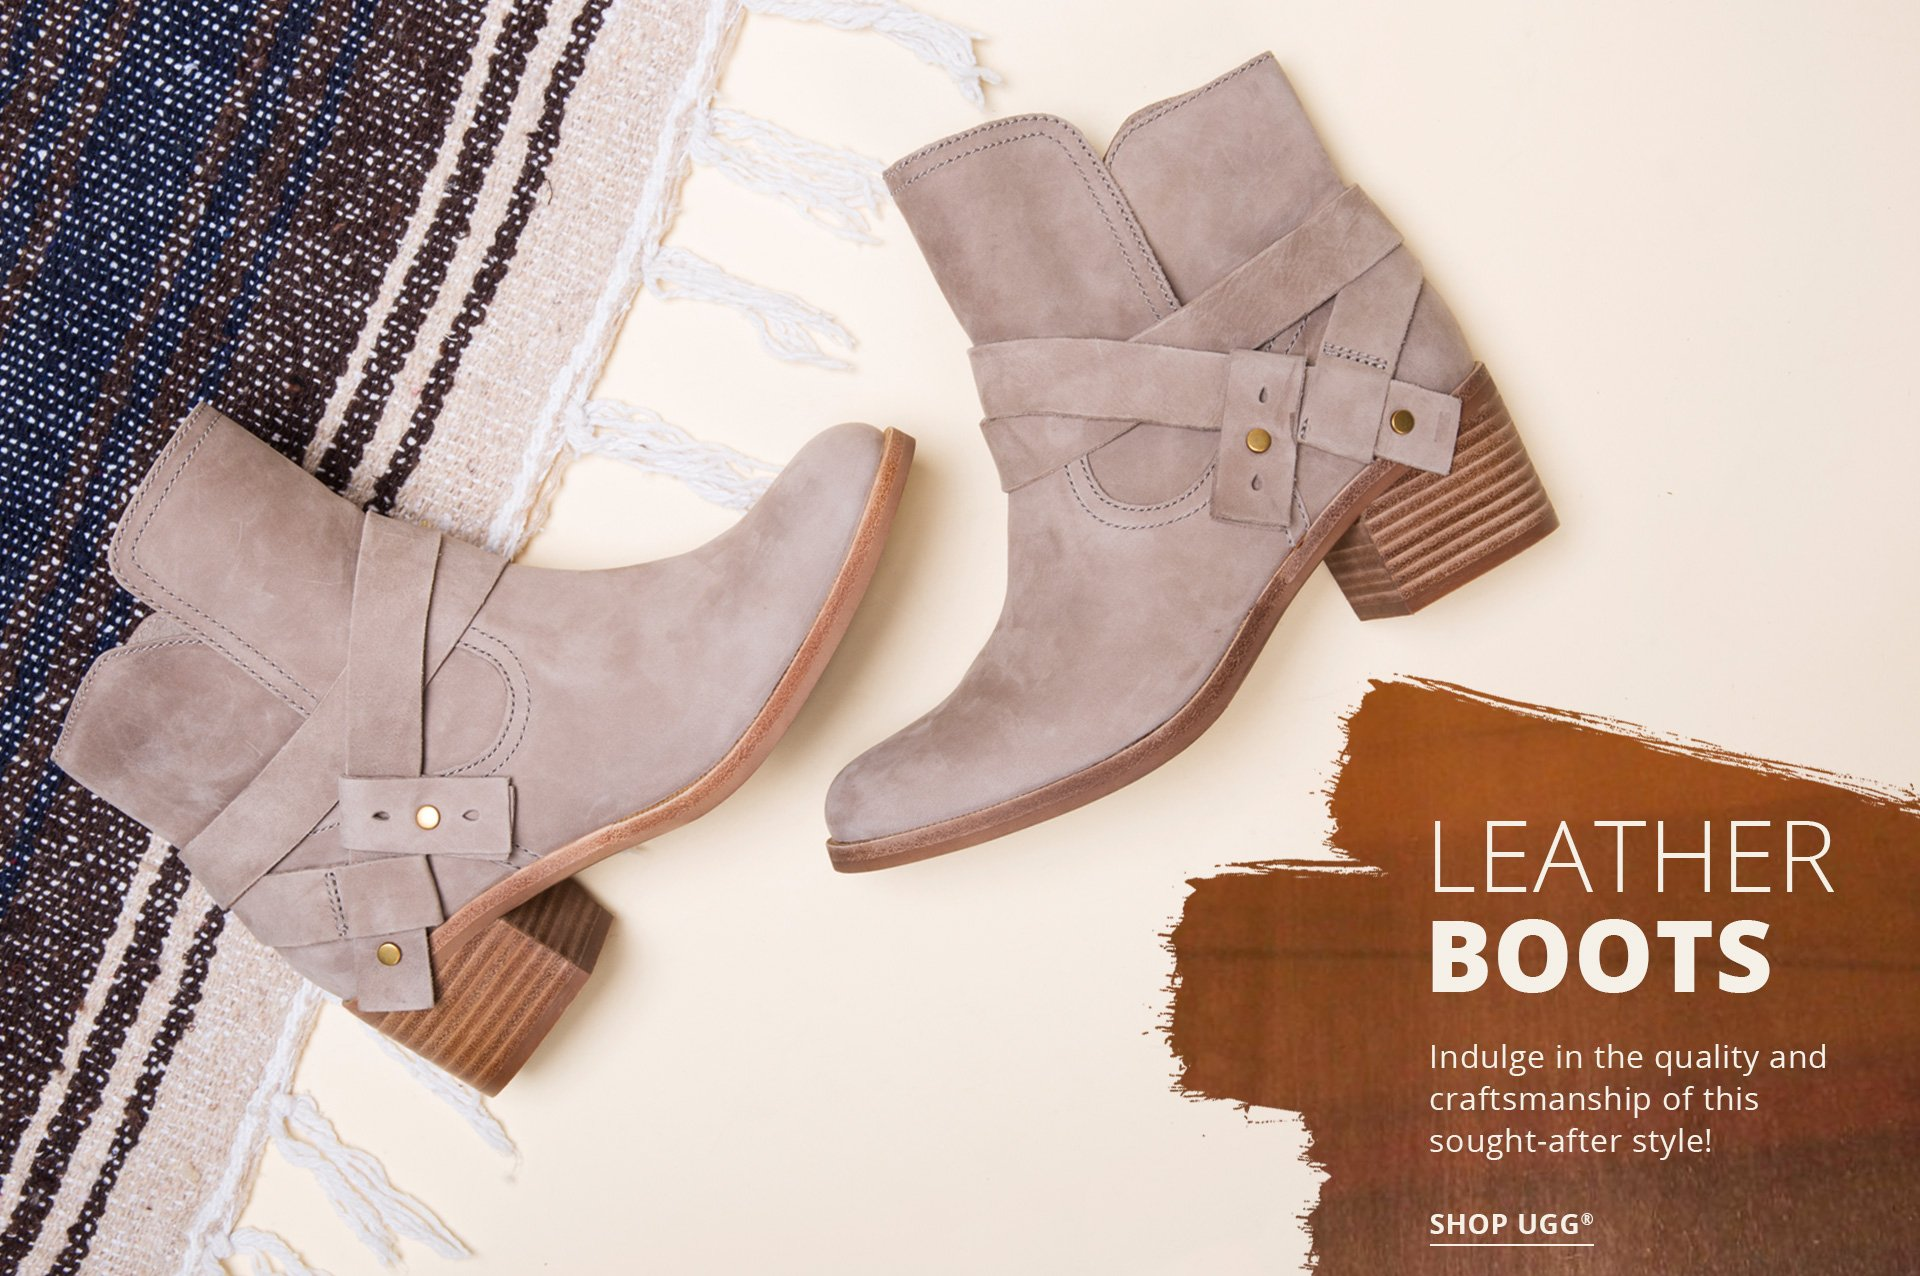 Leather Boots. Indulge in the quality and craftsmanship of this sought-after style! Shop UGG